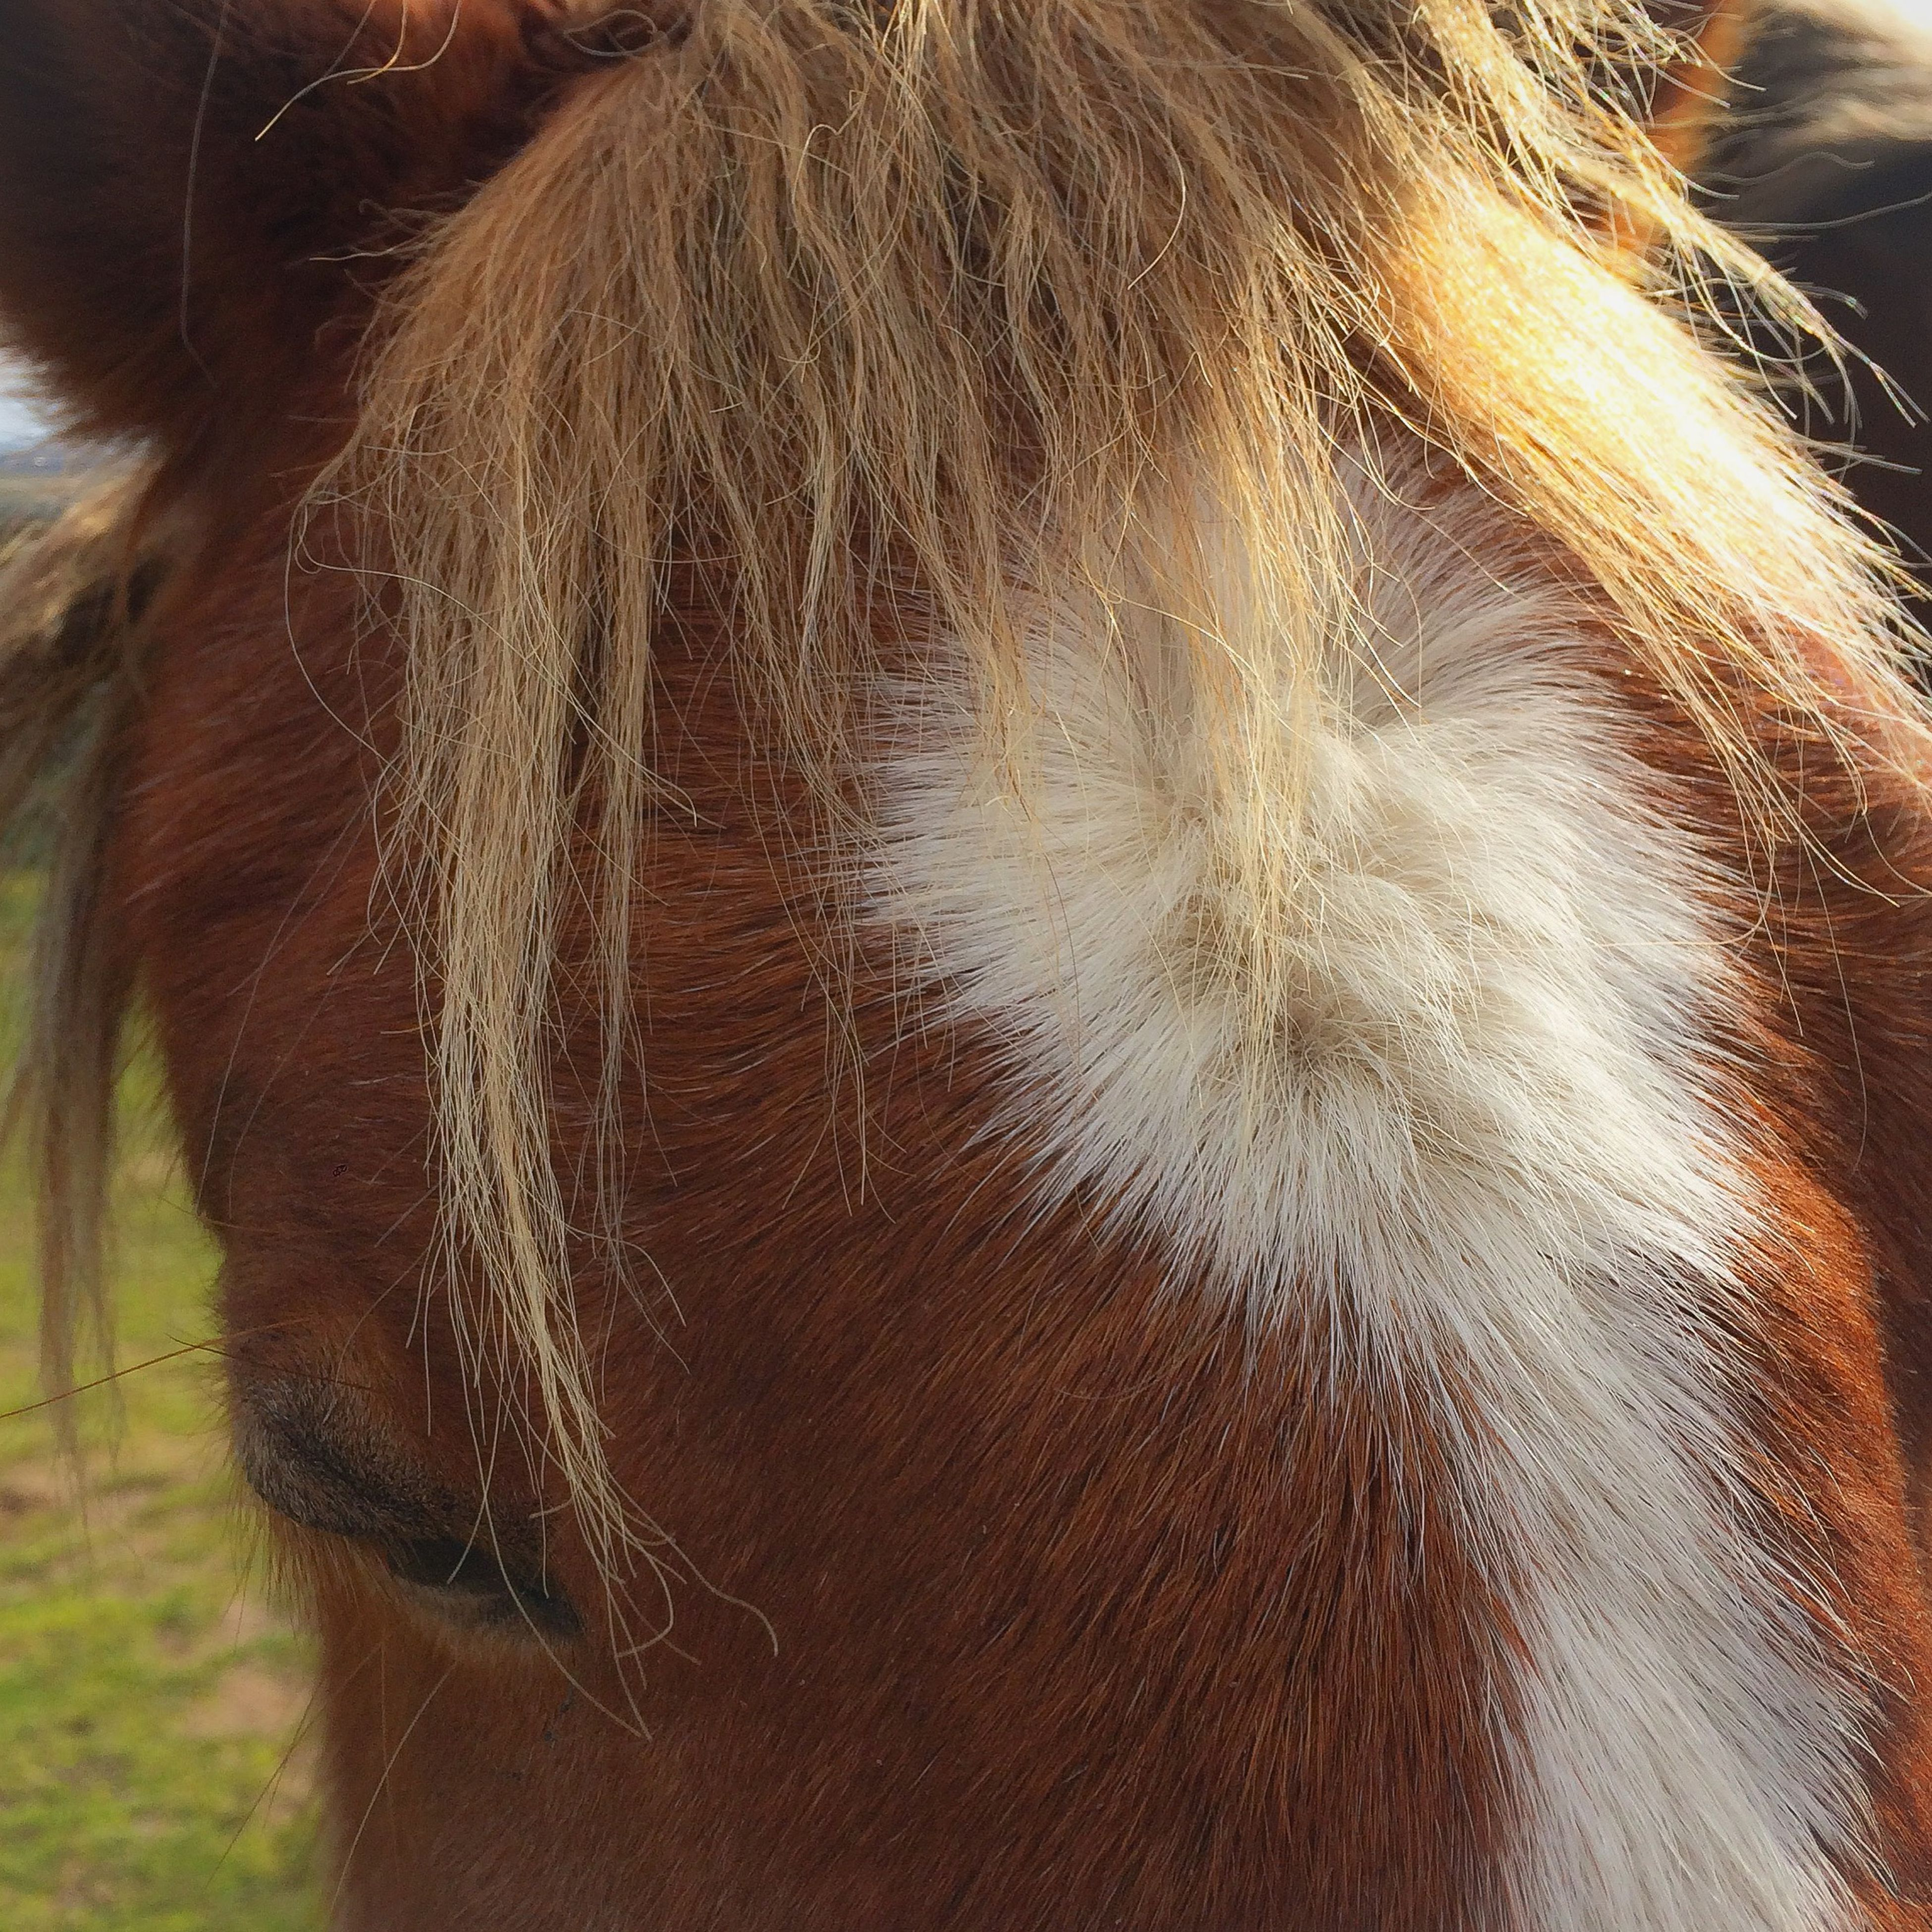 close-up, mammal, one animal, animal themes, part of, animal body part, domestic animals, horse, animal hair, animal head, one person, human hair, day, outdoors, focus on foreground, sunlight, nature, livestock, cropped